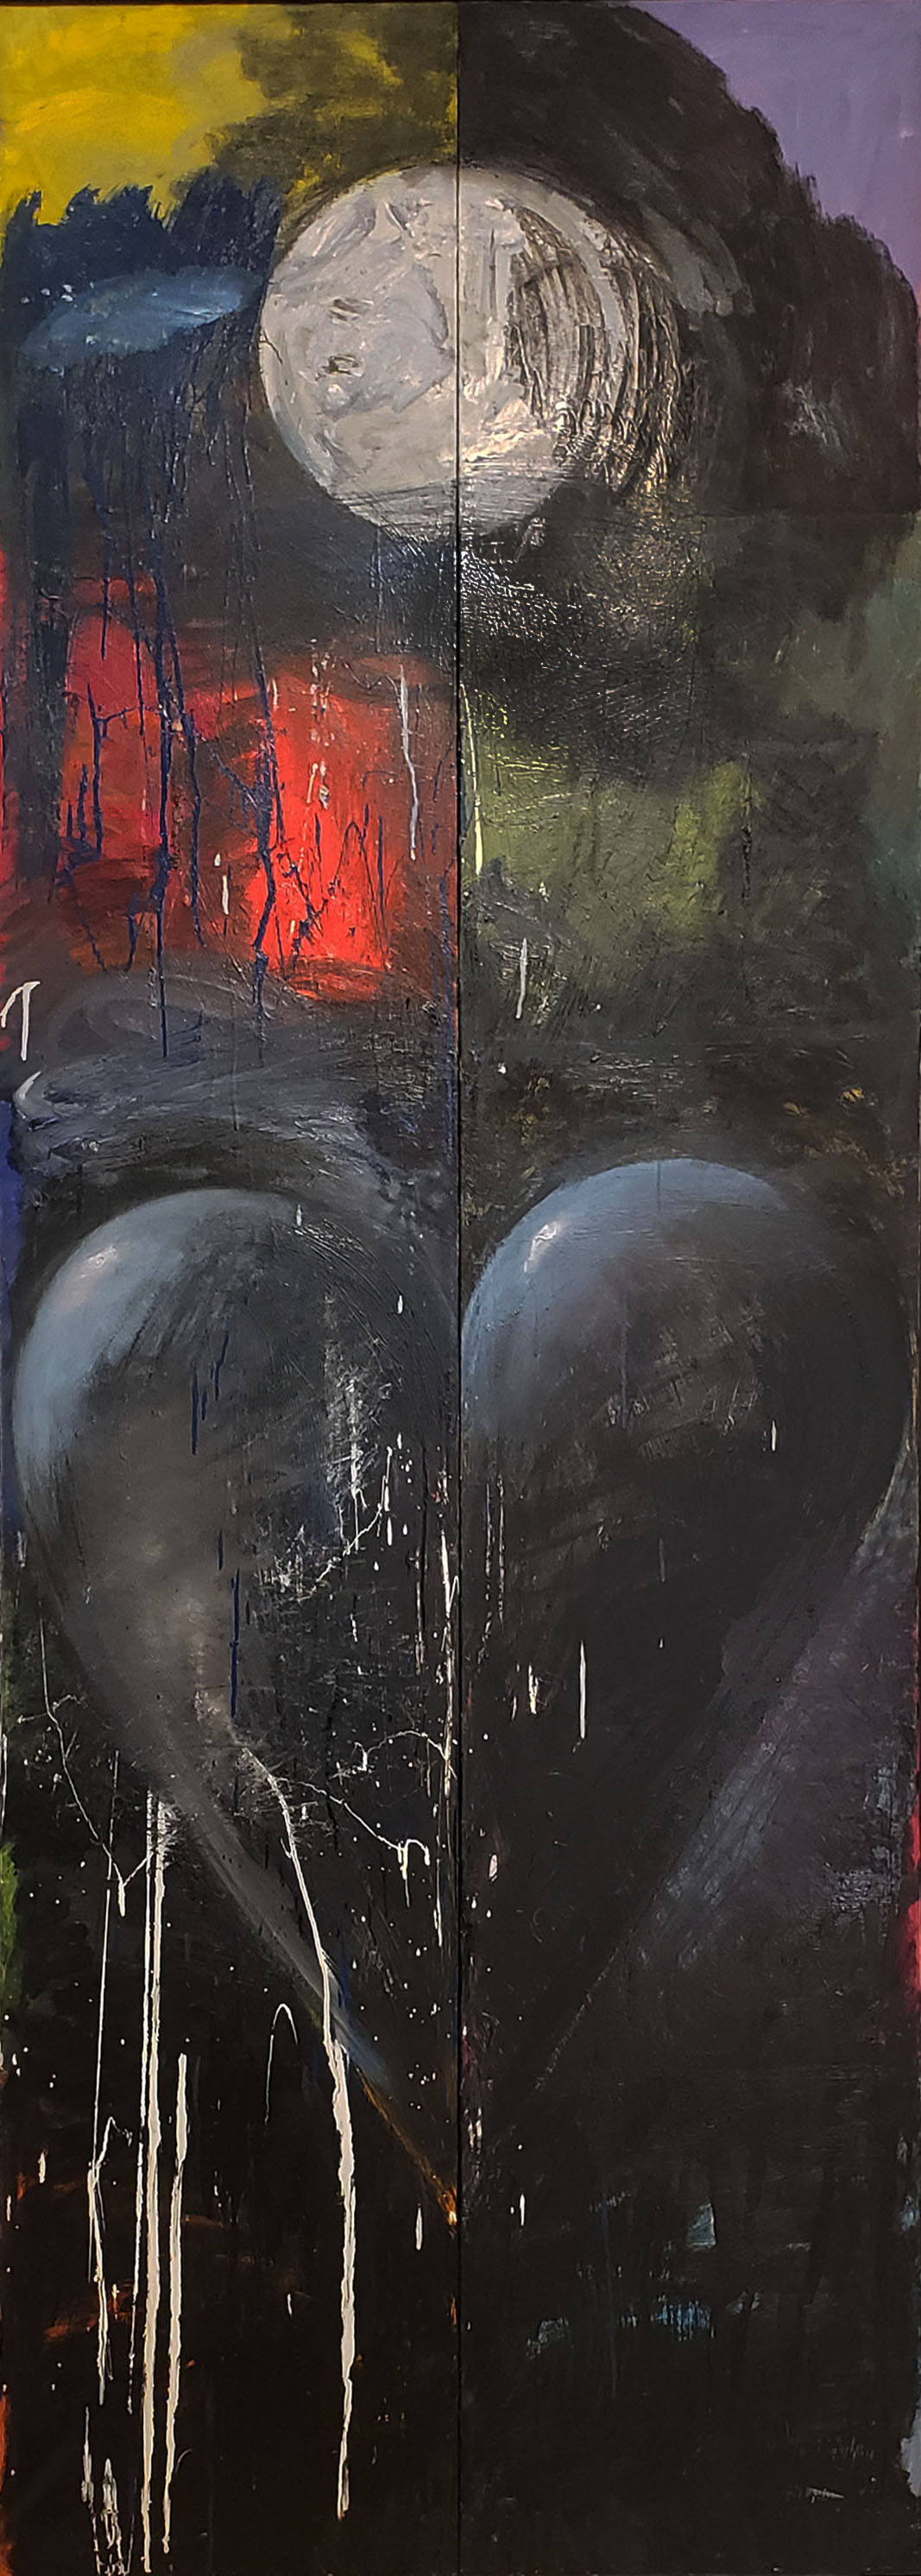 Large vertical painting of a black heart and the moon by Jim Dine